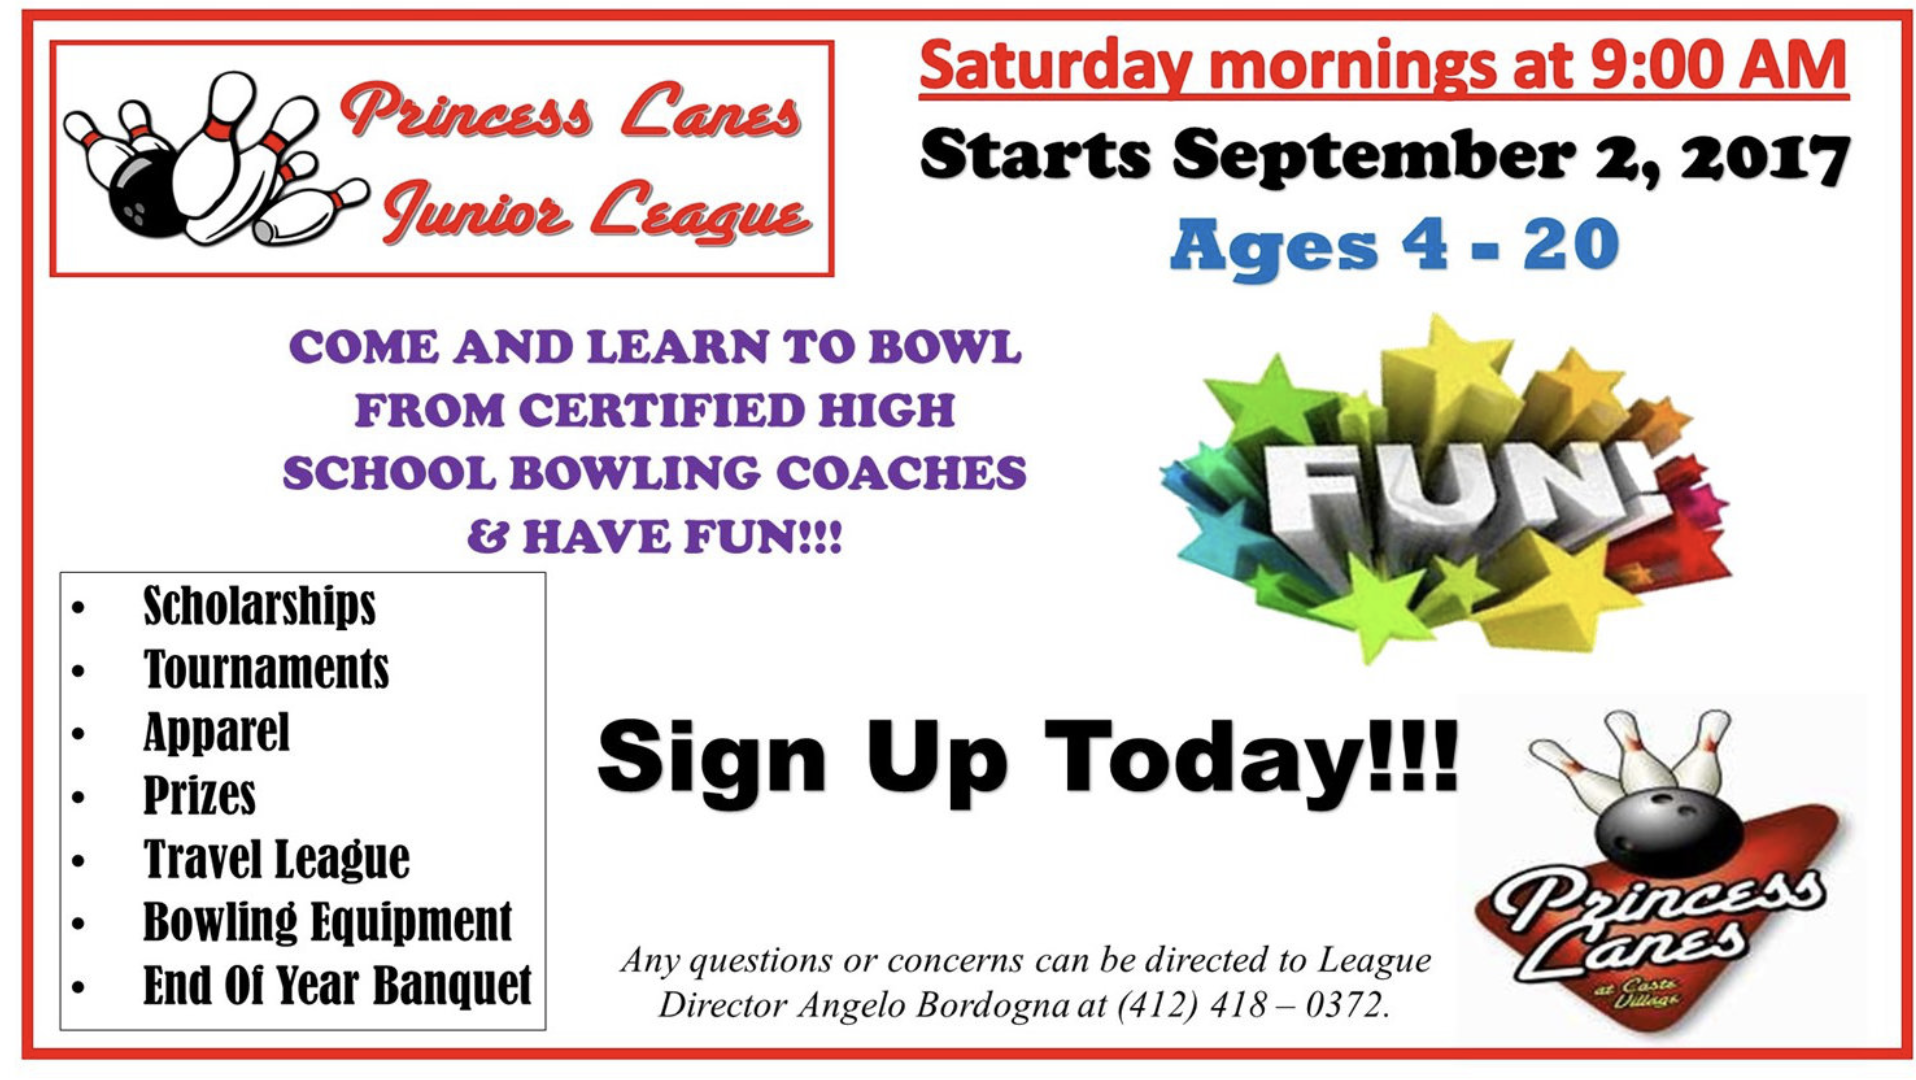 Summer Youth Leagues at Princess Lanes